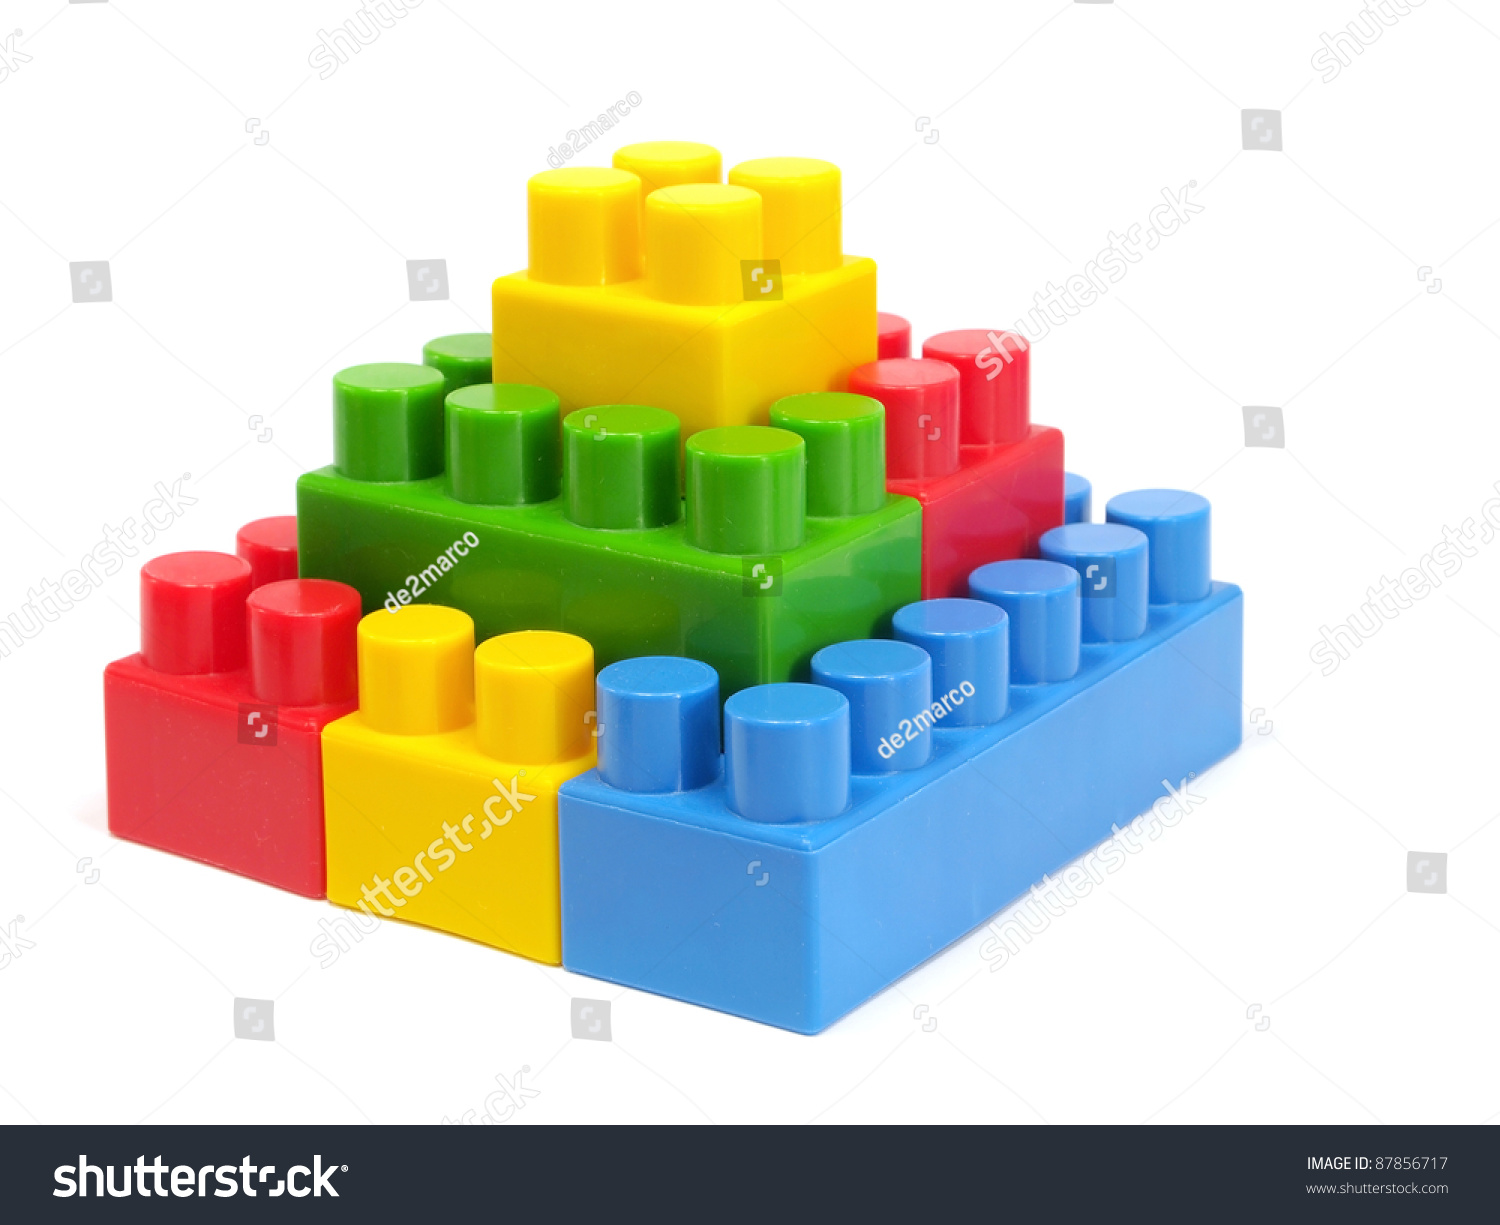 Plastic building blocks pyramid on a white background for Plastic building blocks home construction